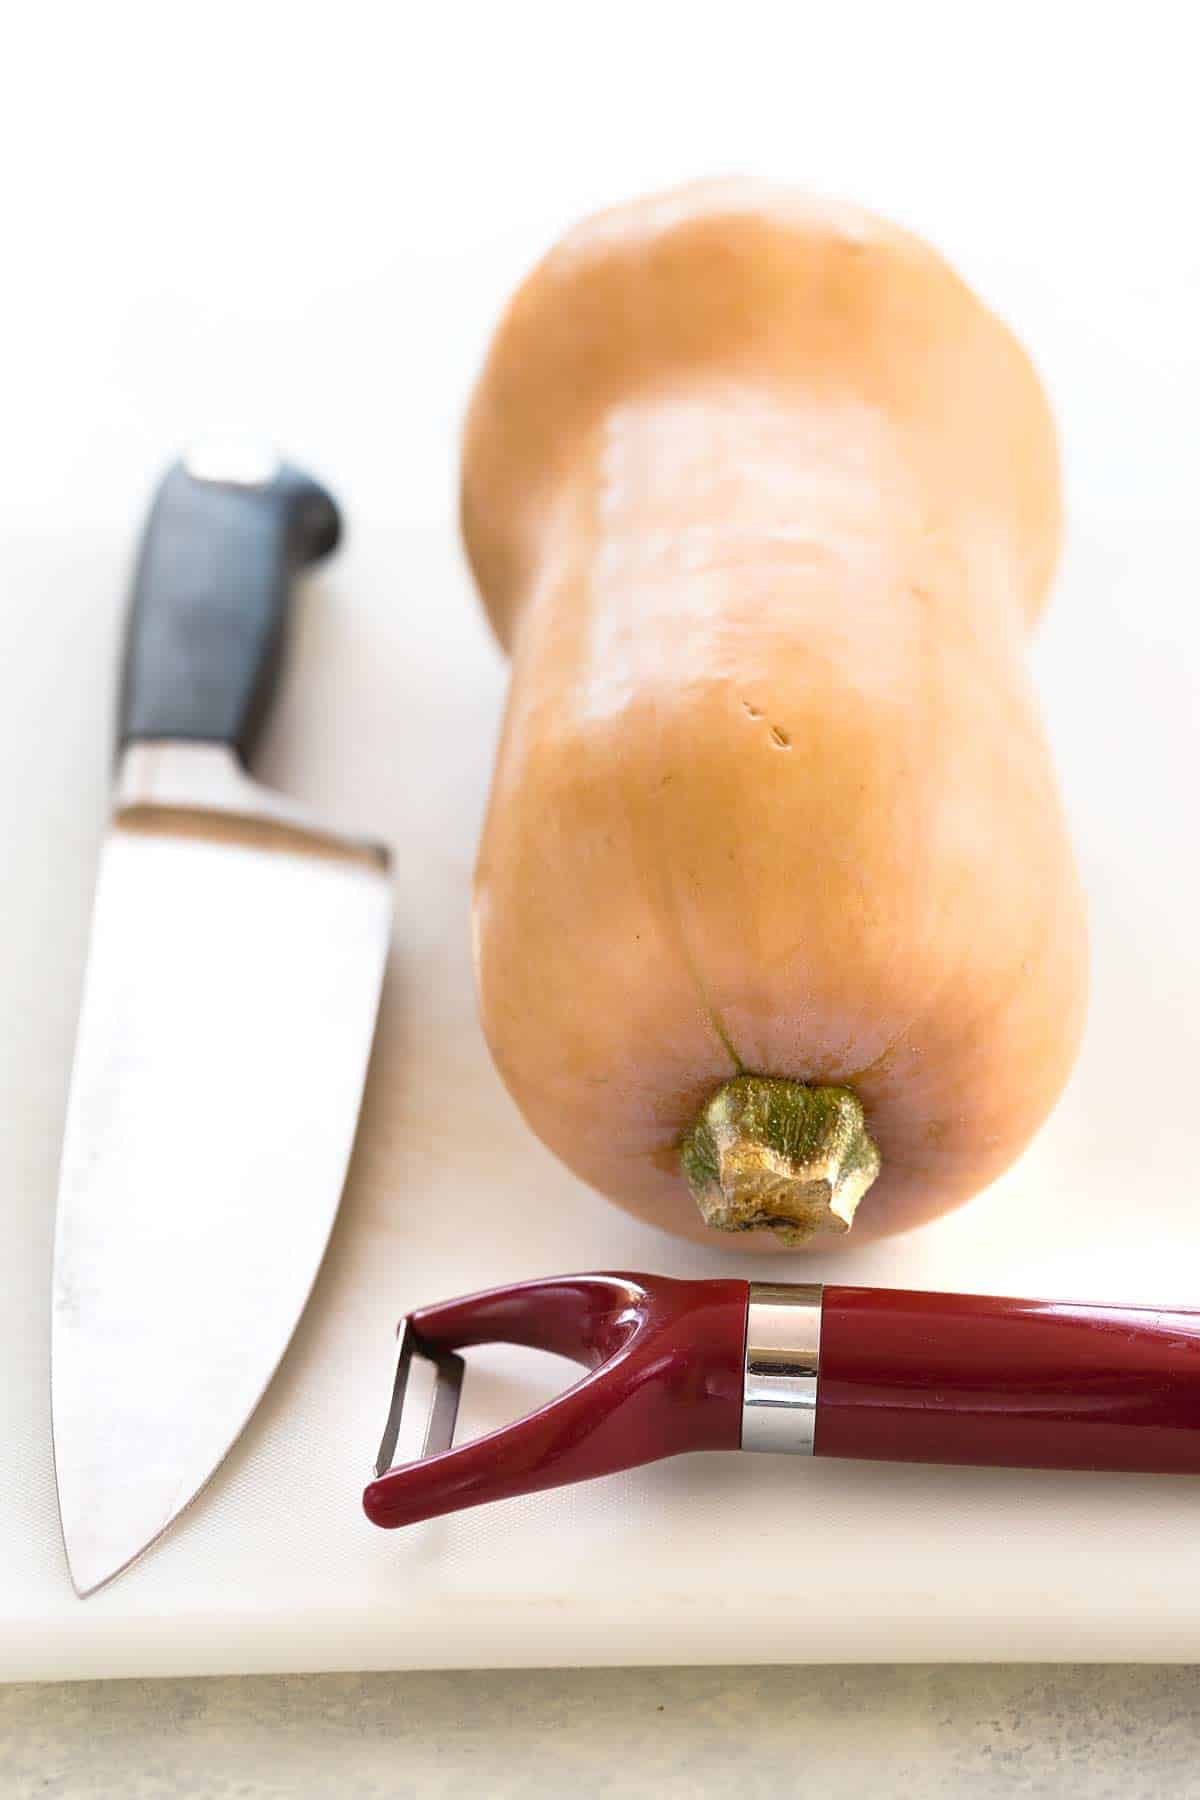 Cutting board with chef knife, peeler, and an uncut butternut squash